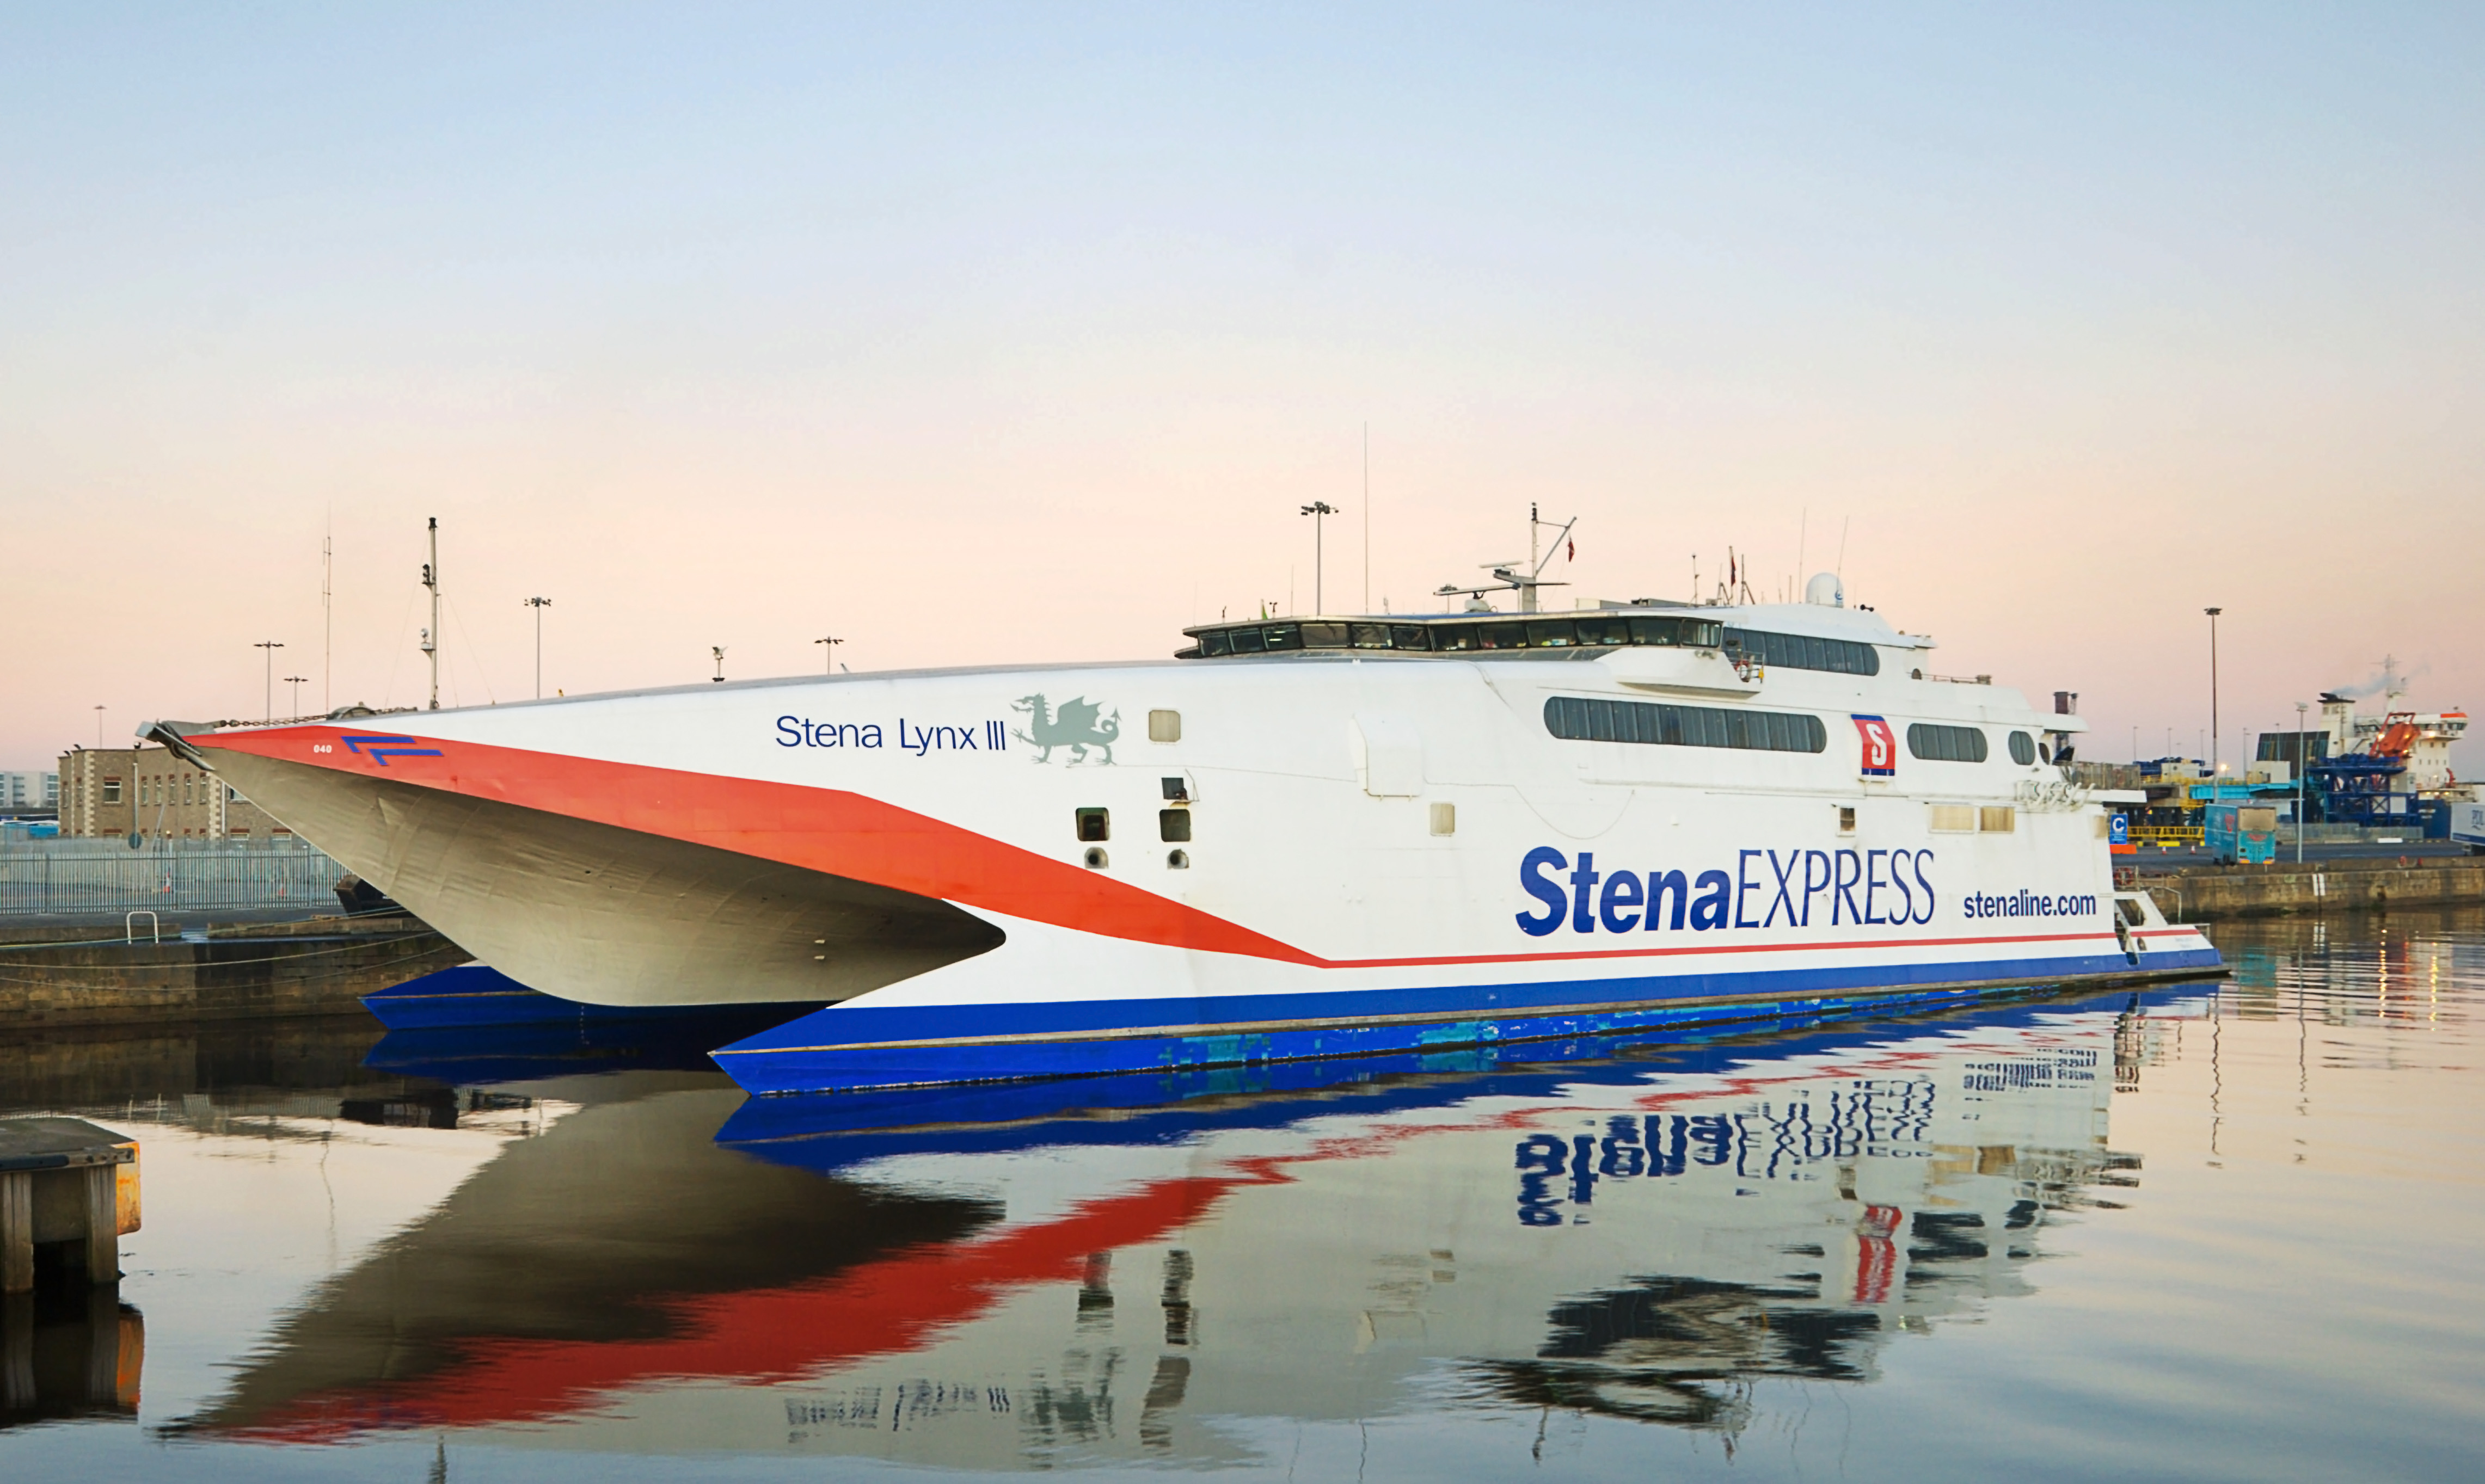 BA850D The Stena Lynx III moored at Dublin Docks. Image shot 12/2008. Exact date unknown.